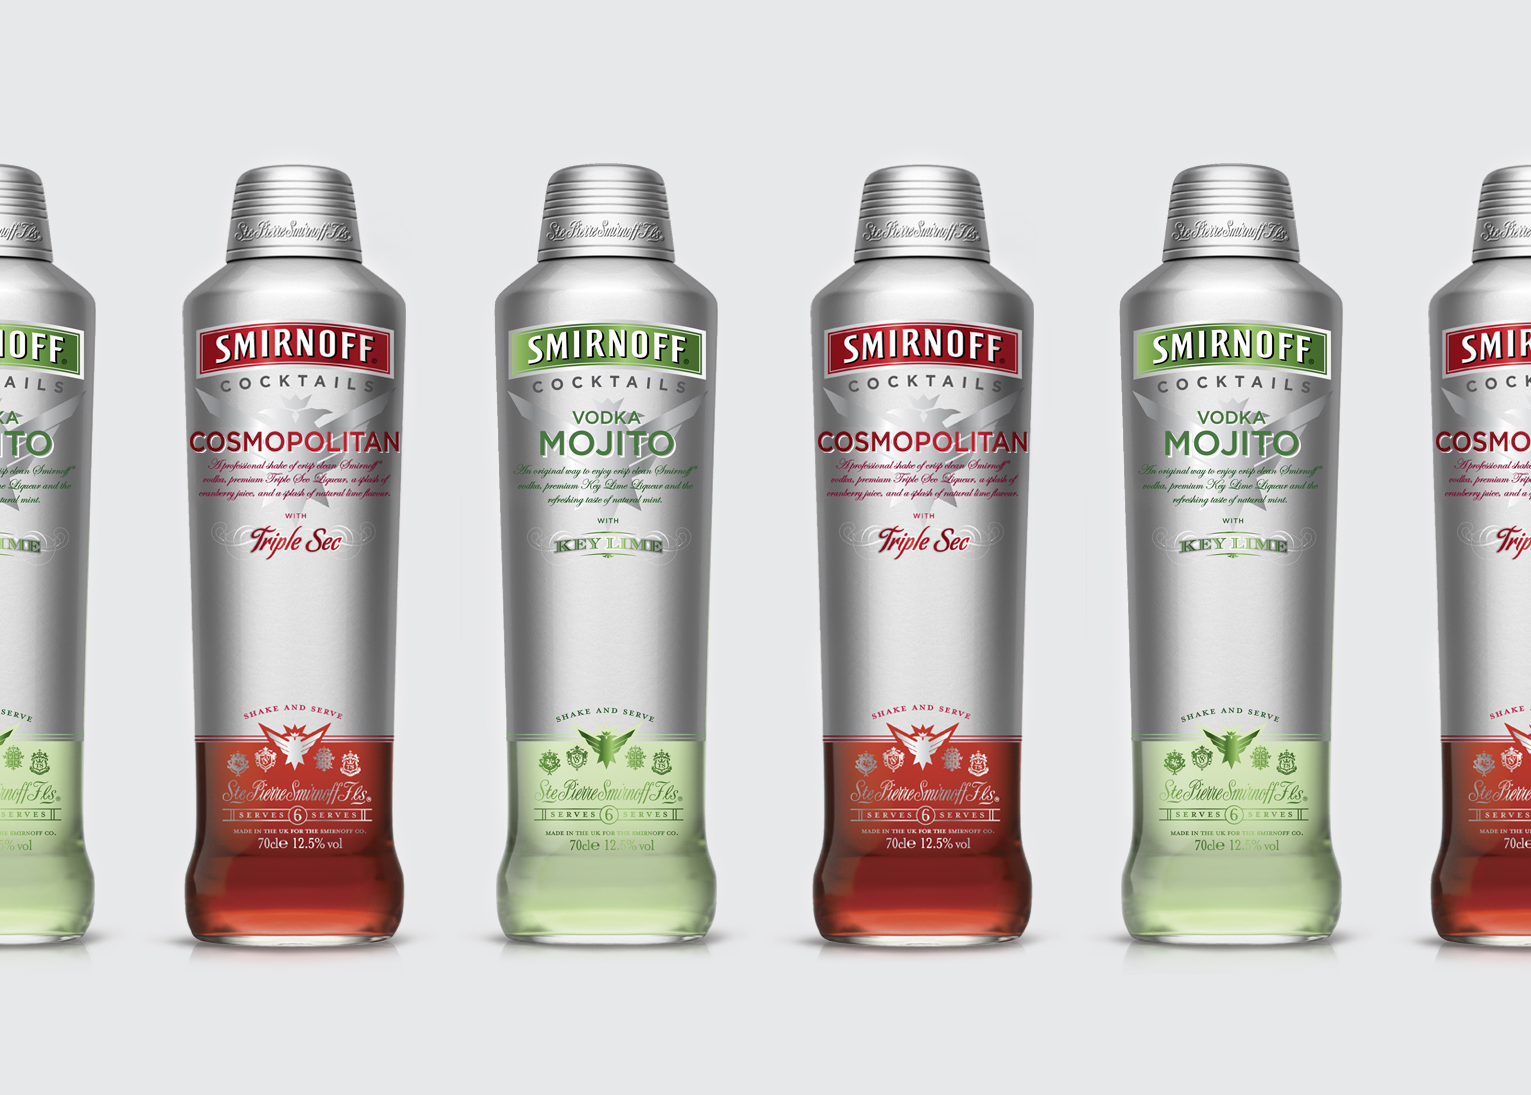 Smirnoff Cocktails bottle design for Europe and United Kingdomm, cosmopolitan and mojito